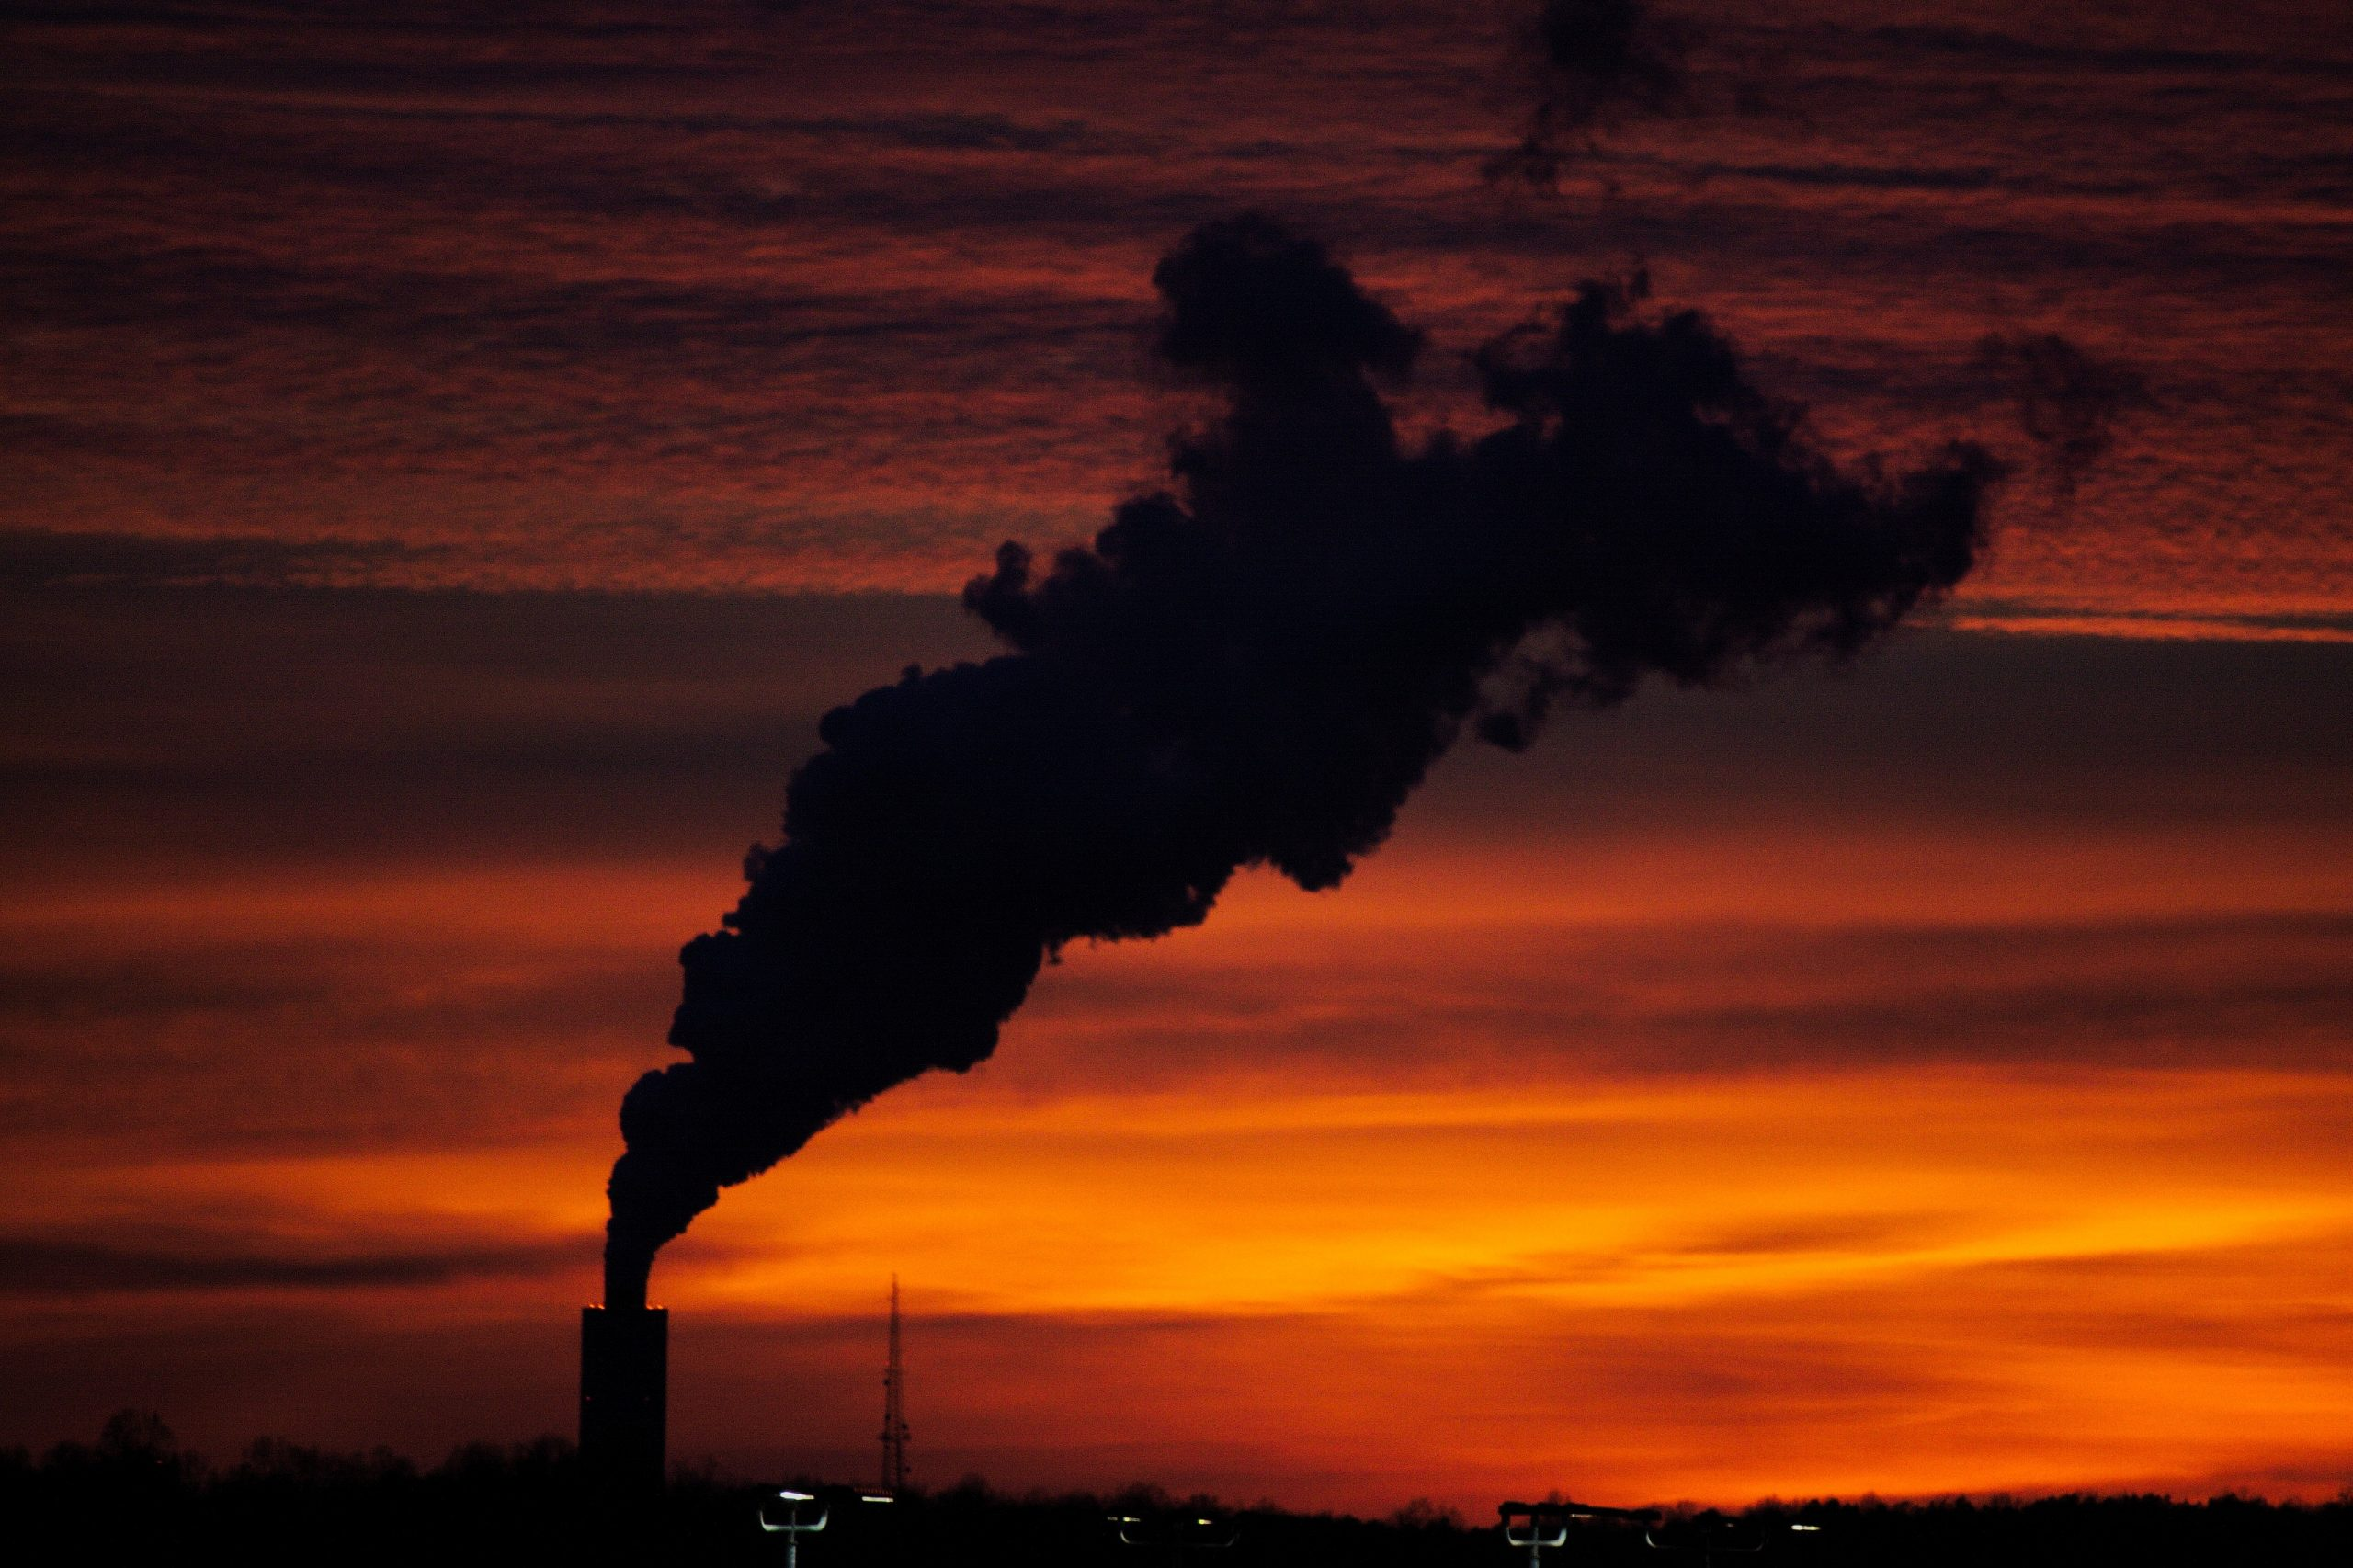 pollution against a red sunset